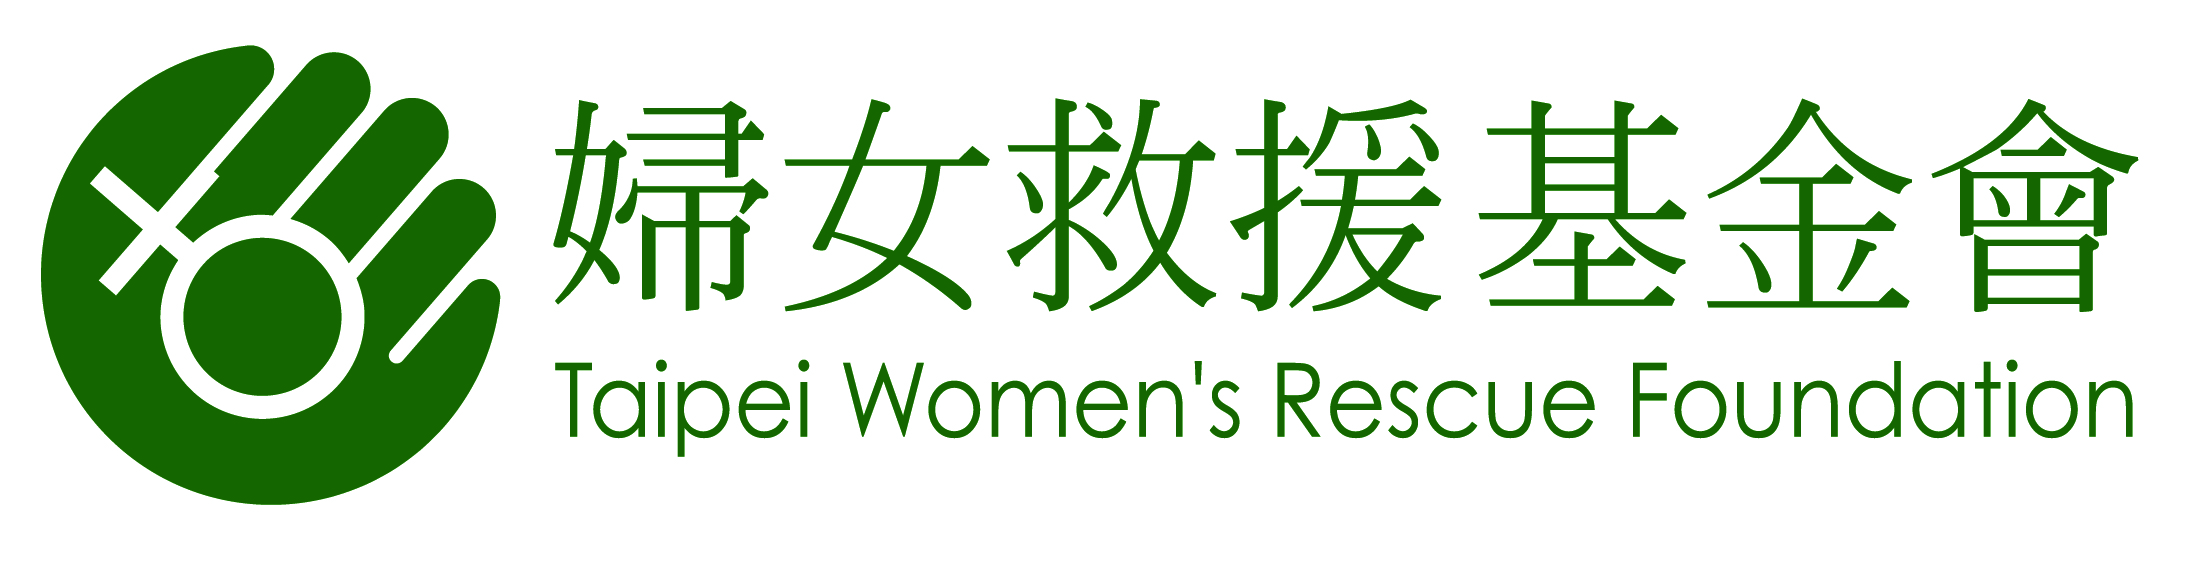 Taipei Women's Rescue Foundation